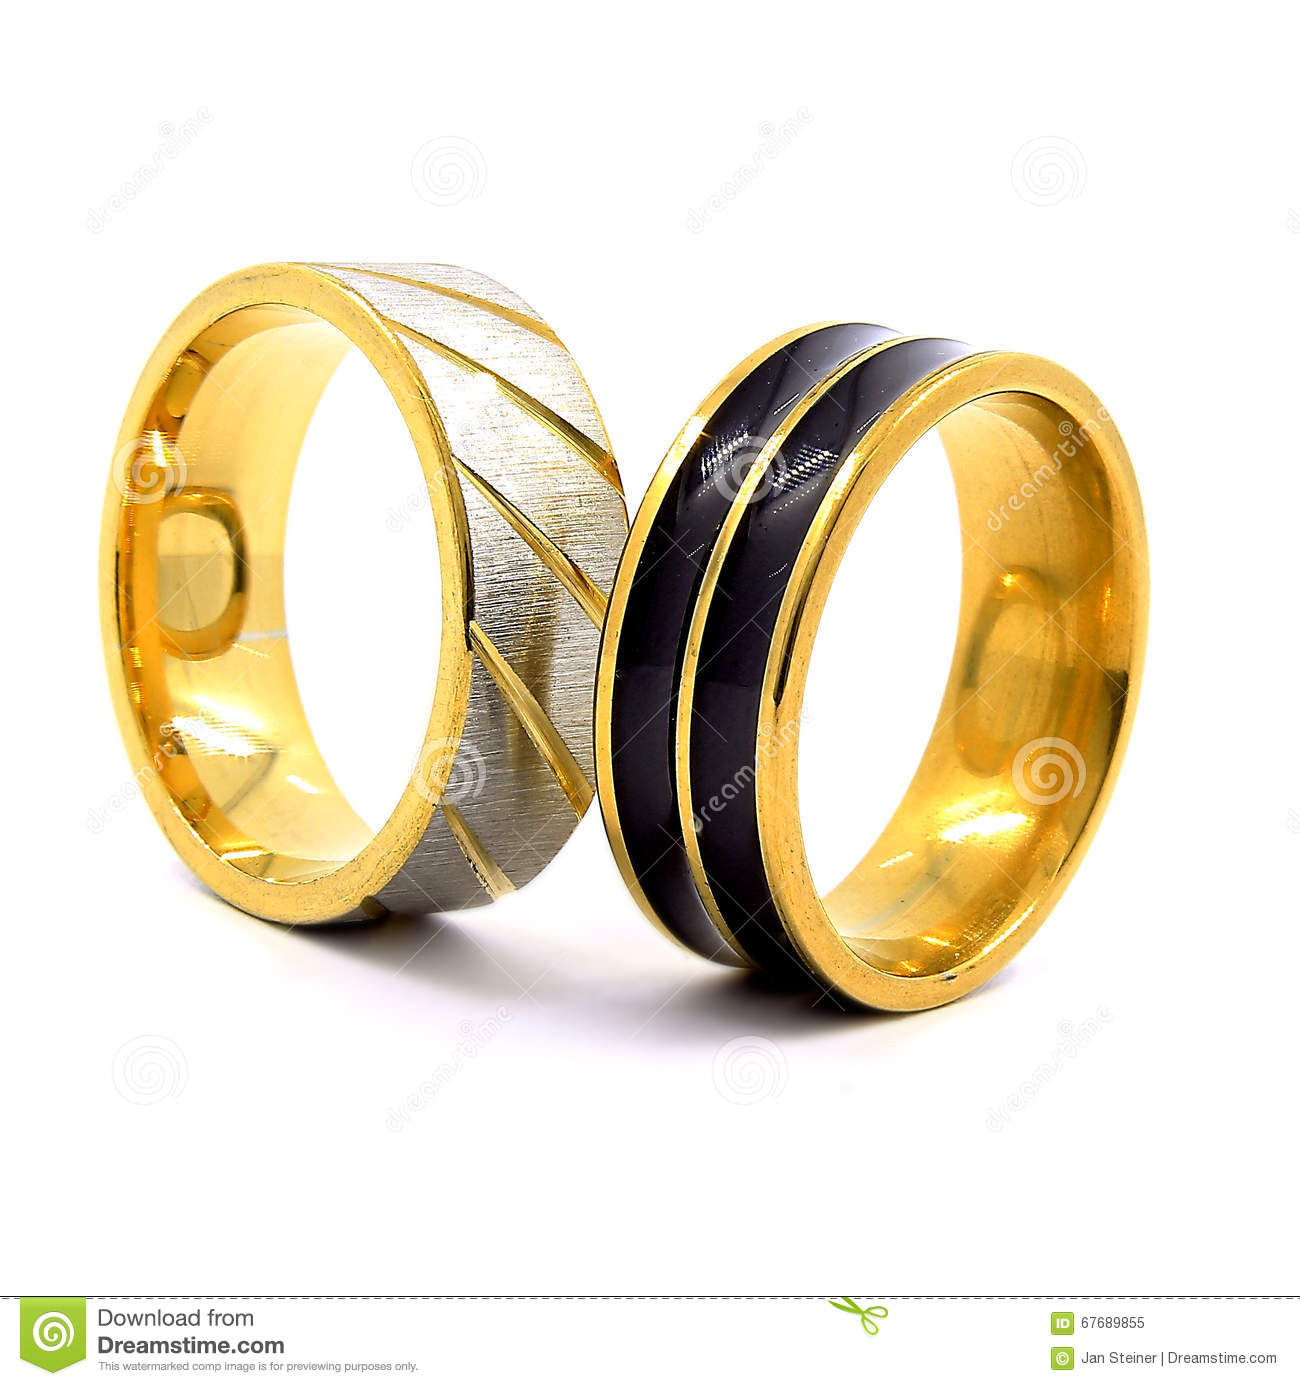 wedding rings gold silver and black and silver - Gold And Silver Wedding Rings